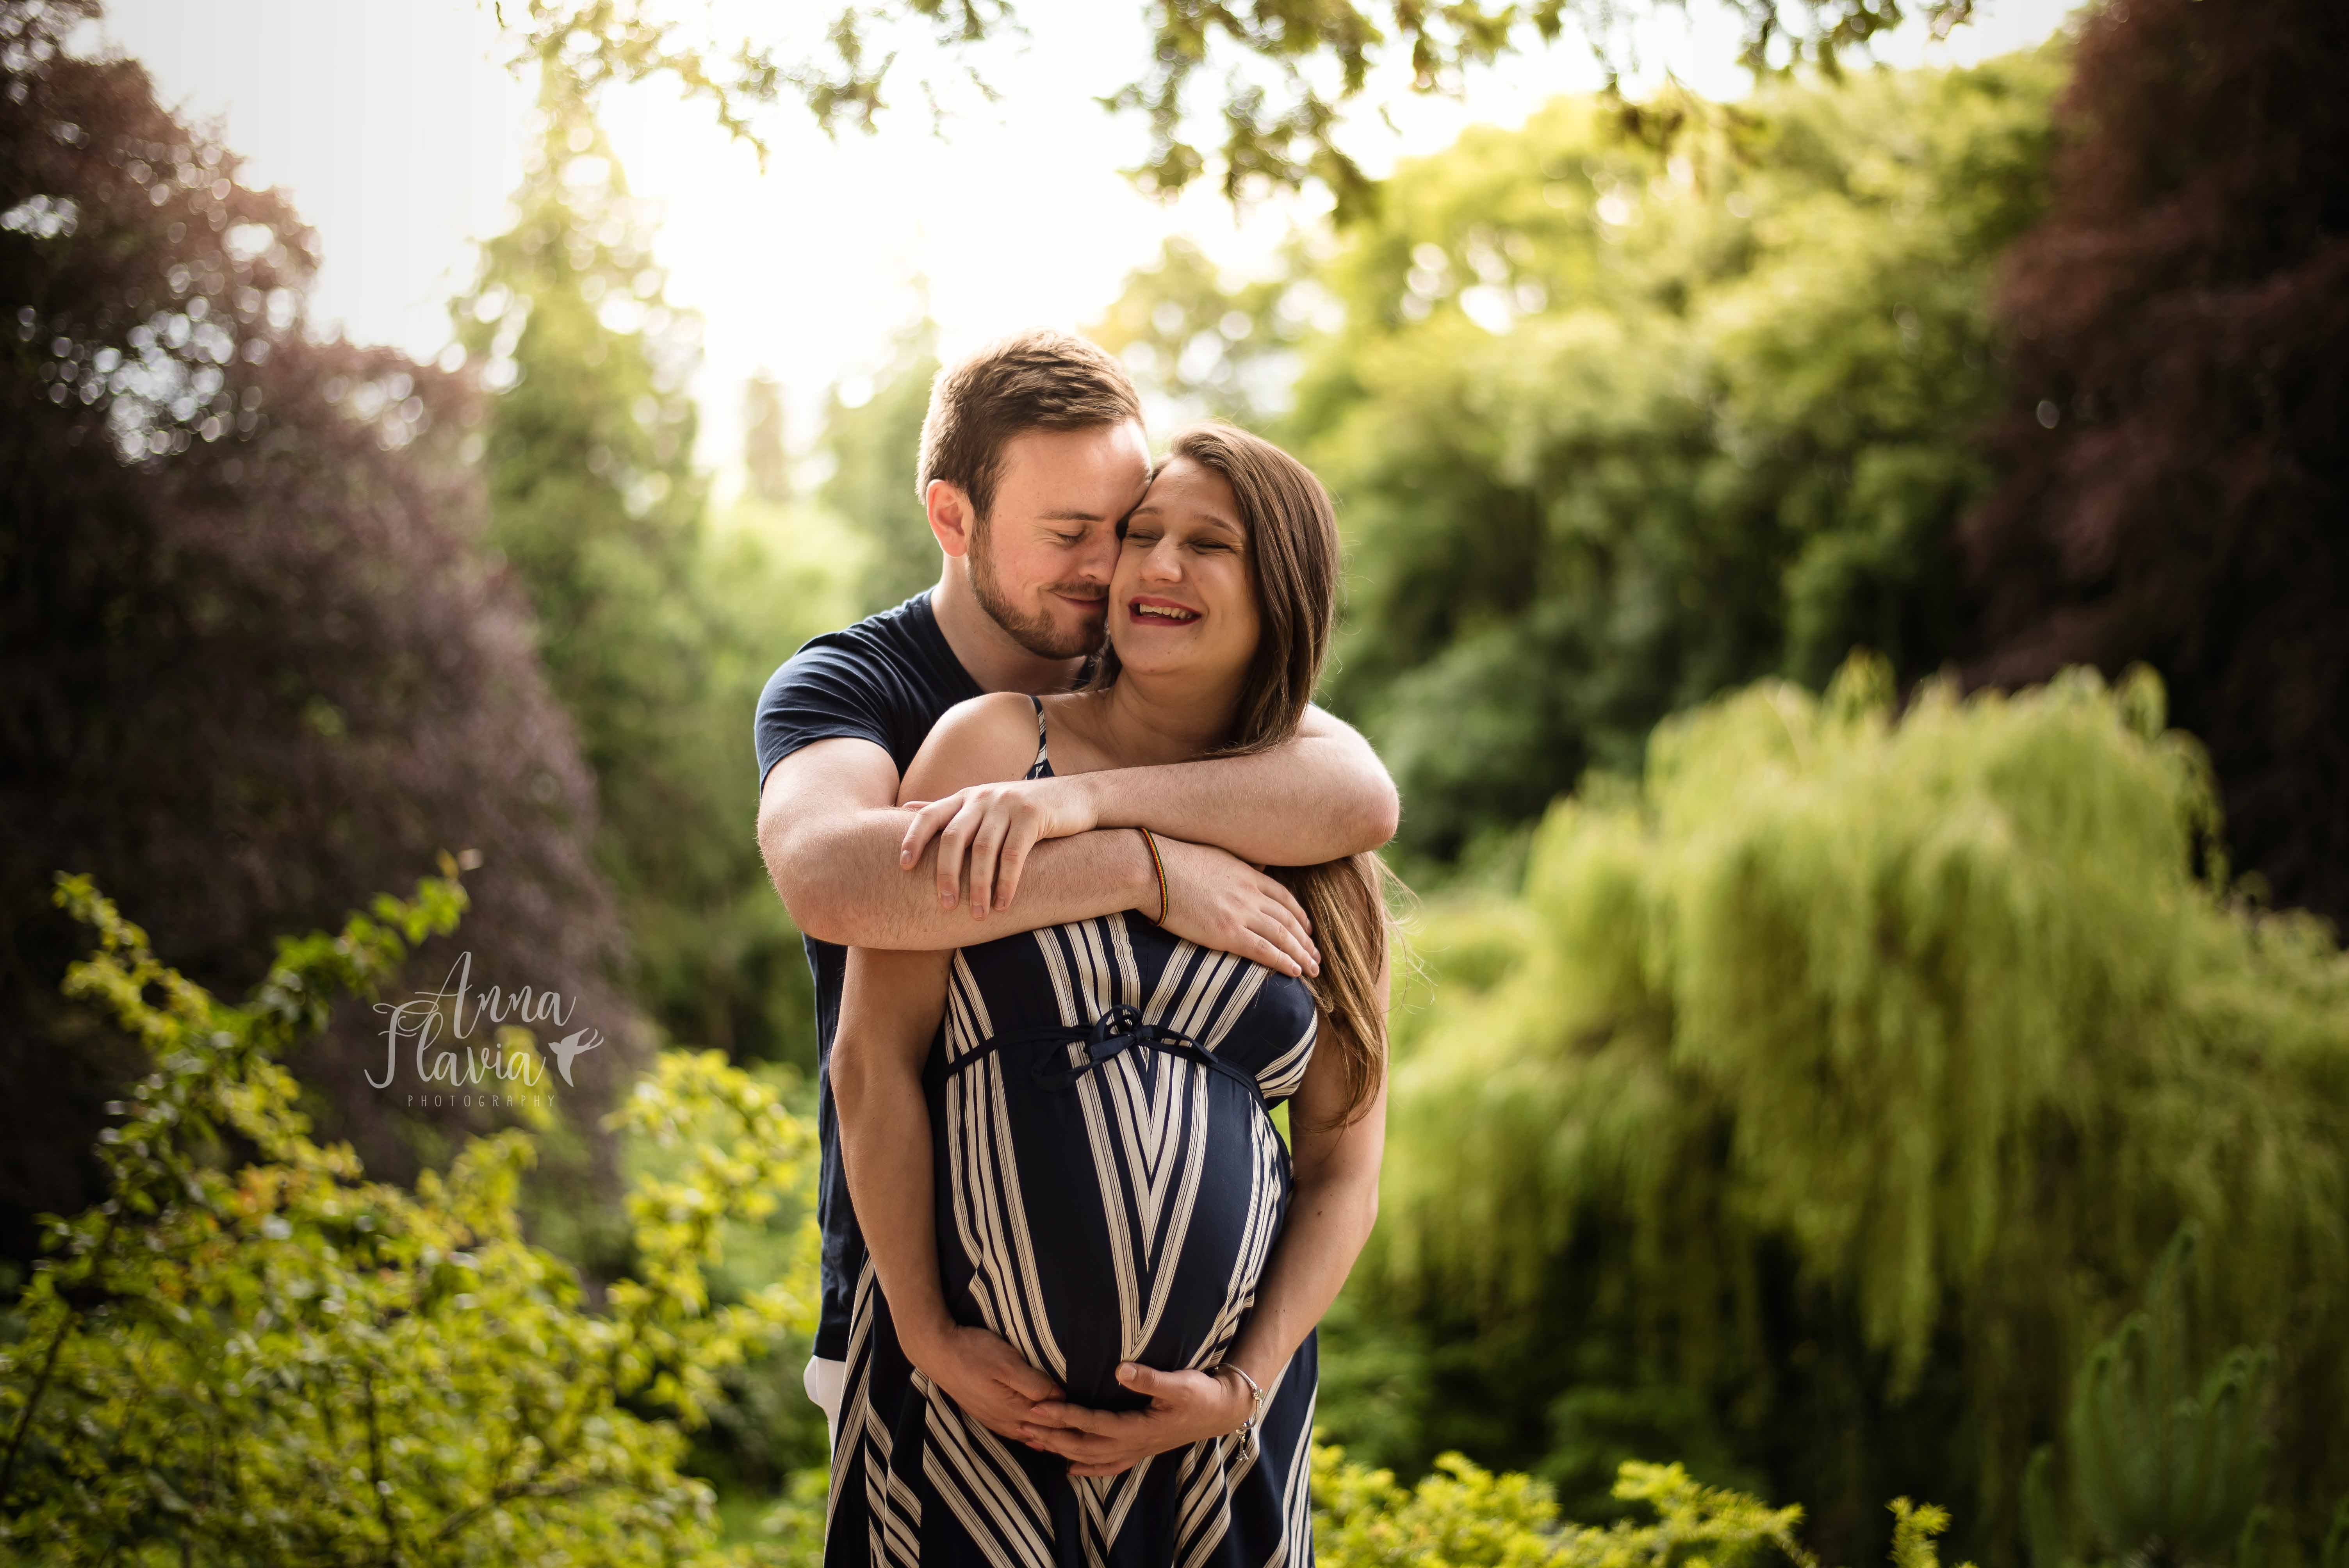 photographer_dublin_anna_flavia_maternity_newborn_family_7